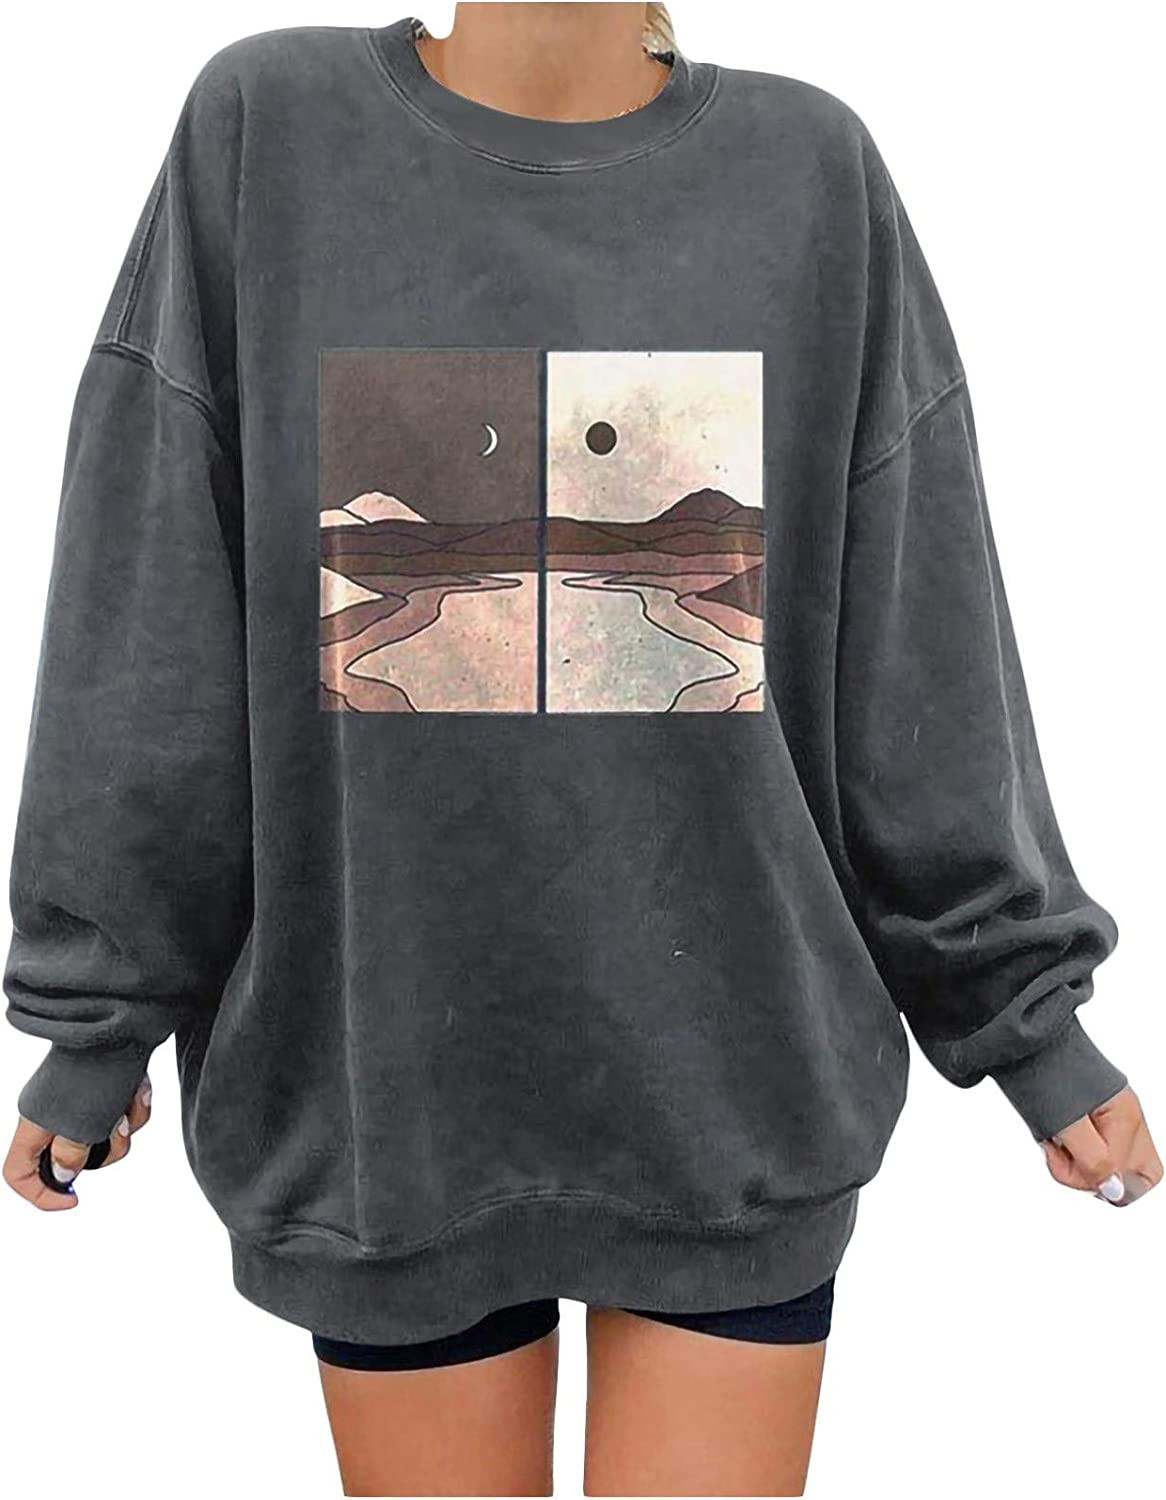 nunonette Pullover Sweaters for Women,Womens Aesthetic Sweater Landscape Printed Long Sleeve Casual Sweatshirt Top Blouse